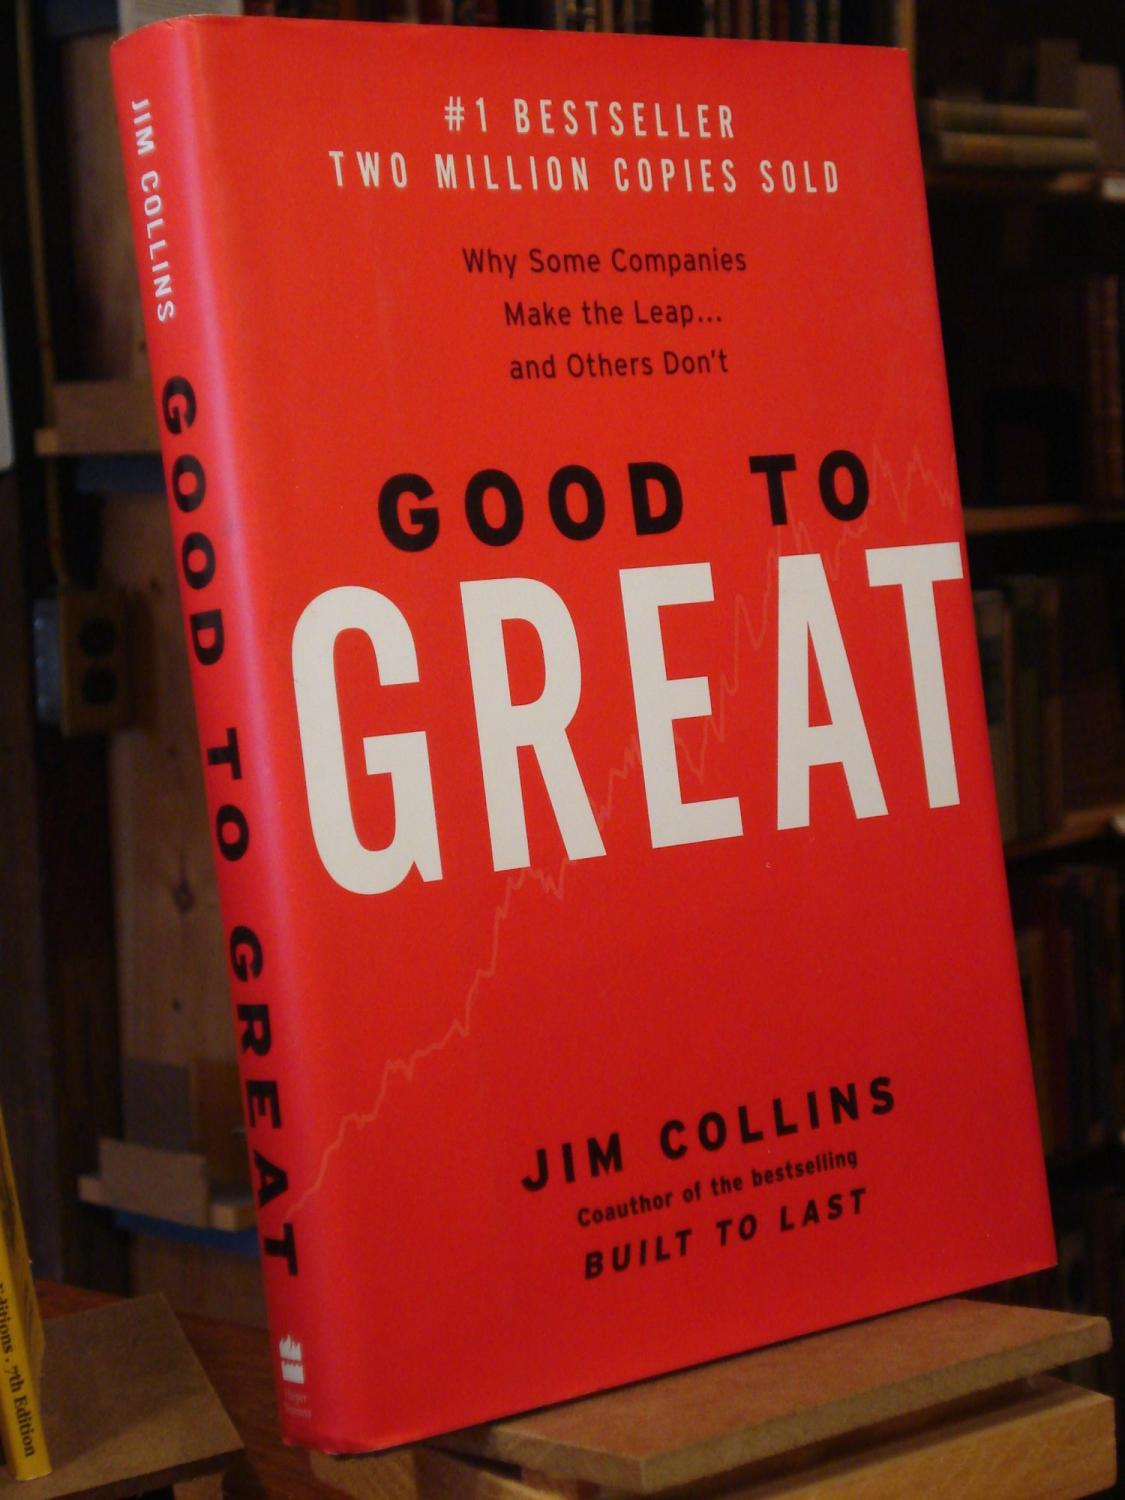 good to great by jim collins The latest tweets from jim collins - good to great (@level5leaders) jim collins is a student and teacher of what make great companies tick and author or co-author of six books, including good to great and built to last.